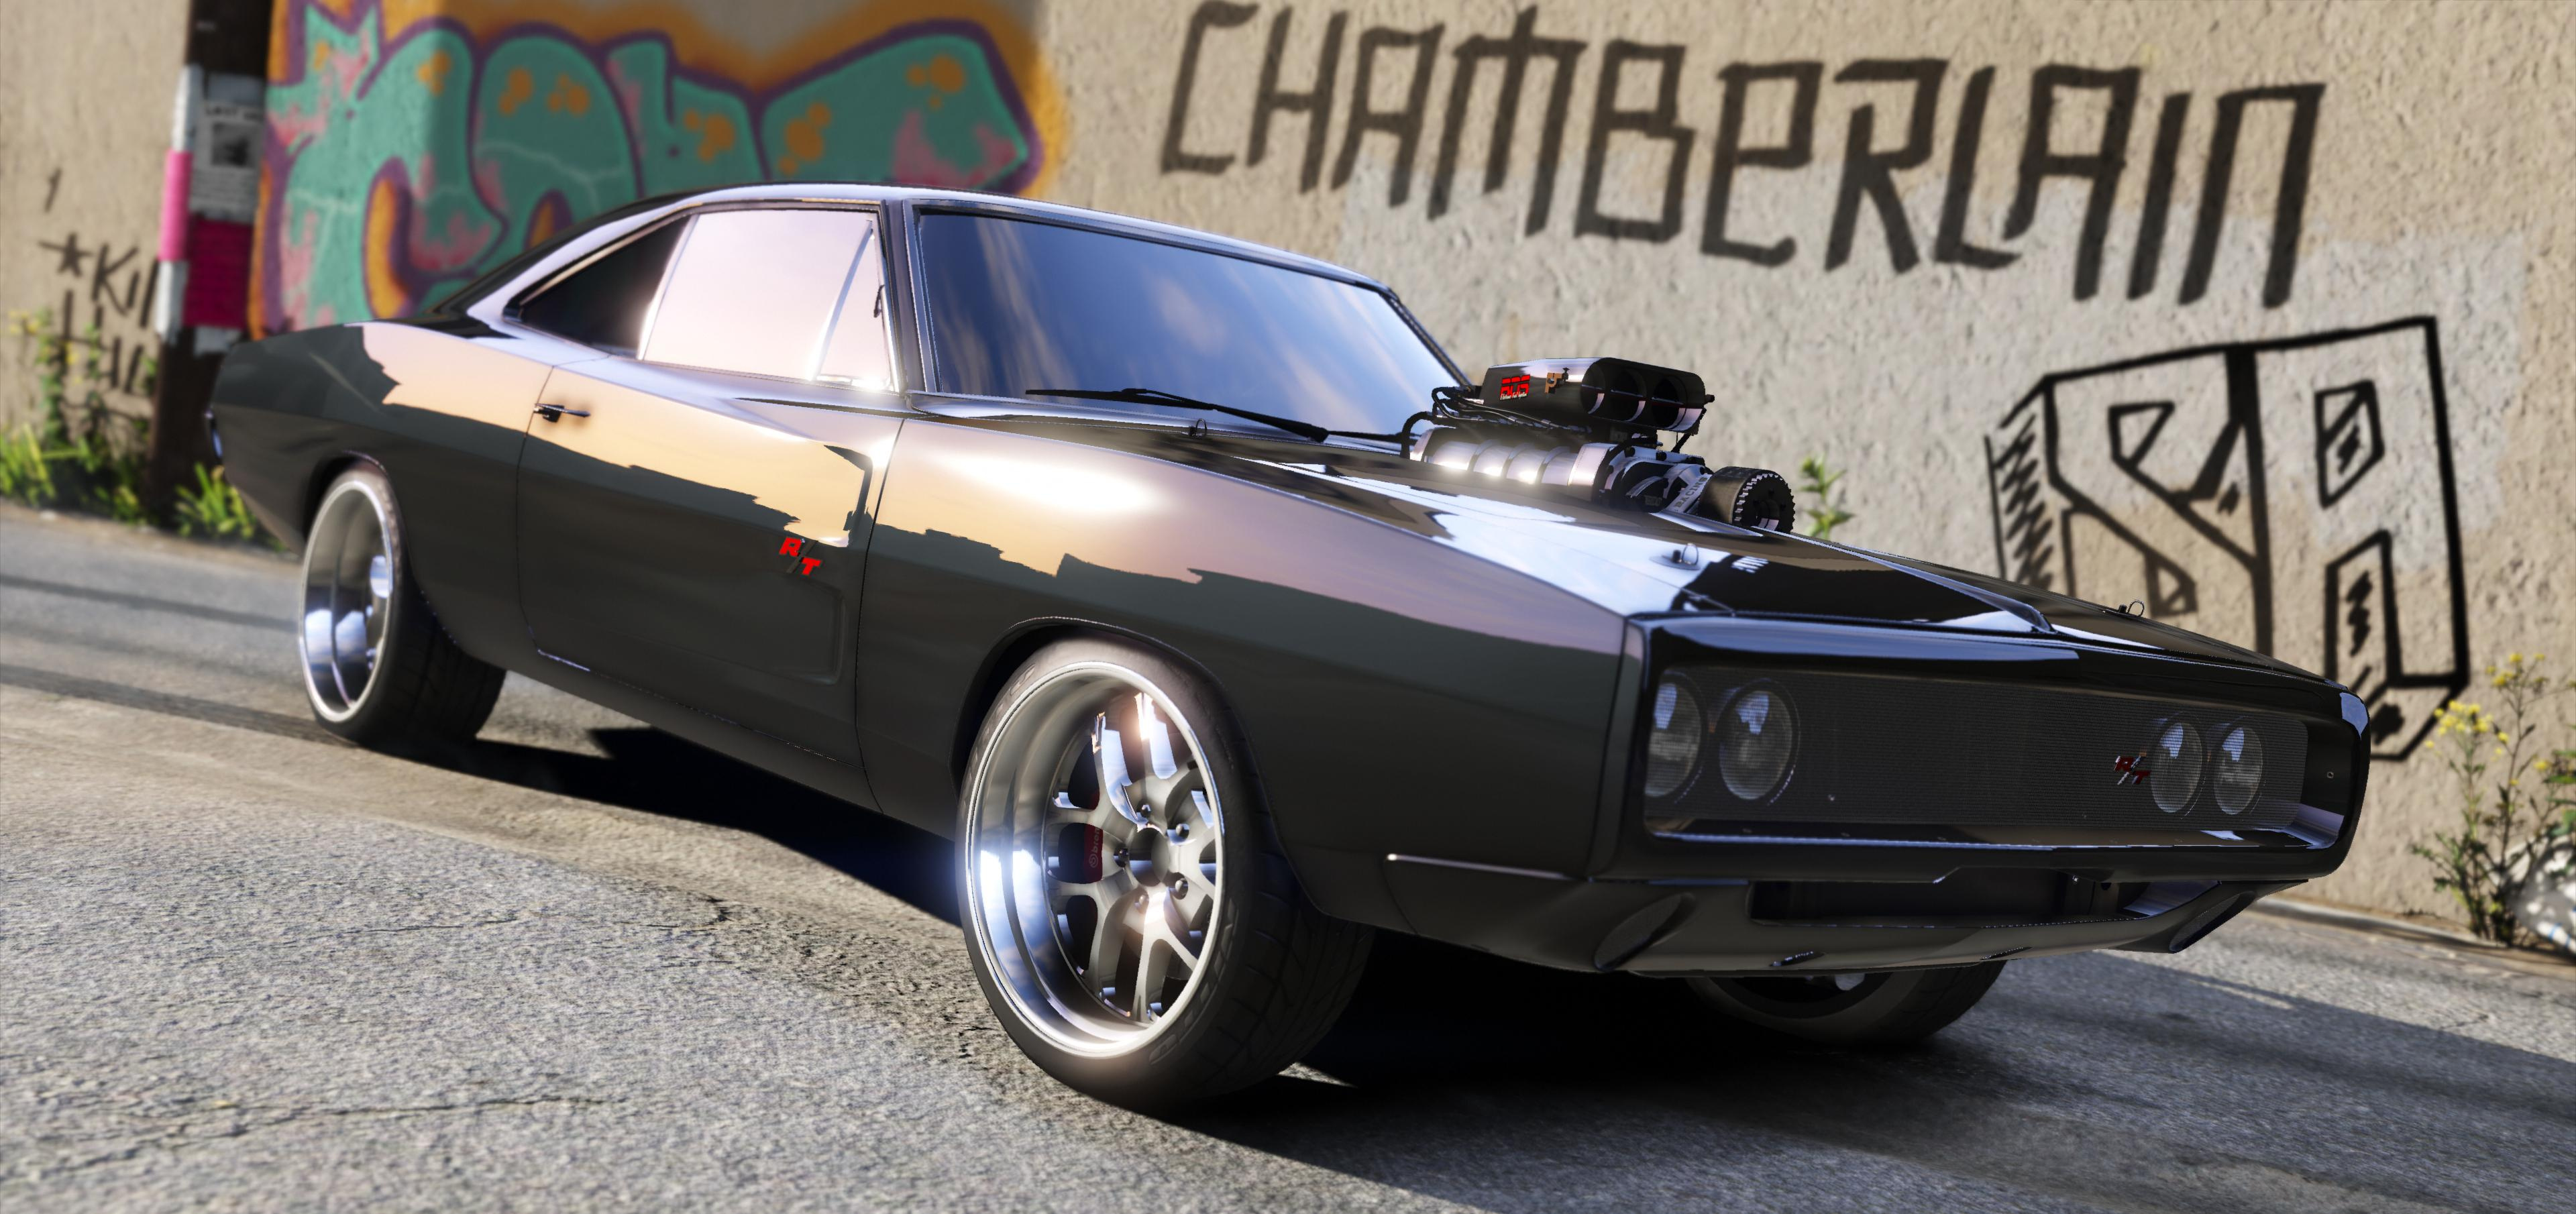 Dom S 1970 Dodge Charger Furious 7 Working Blower Add On Lods Gta5 Mods Com